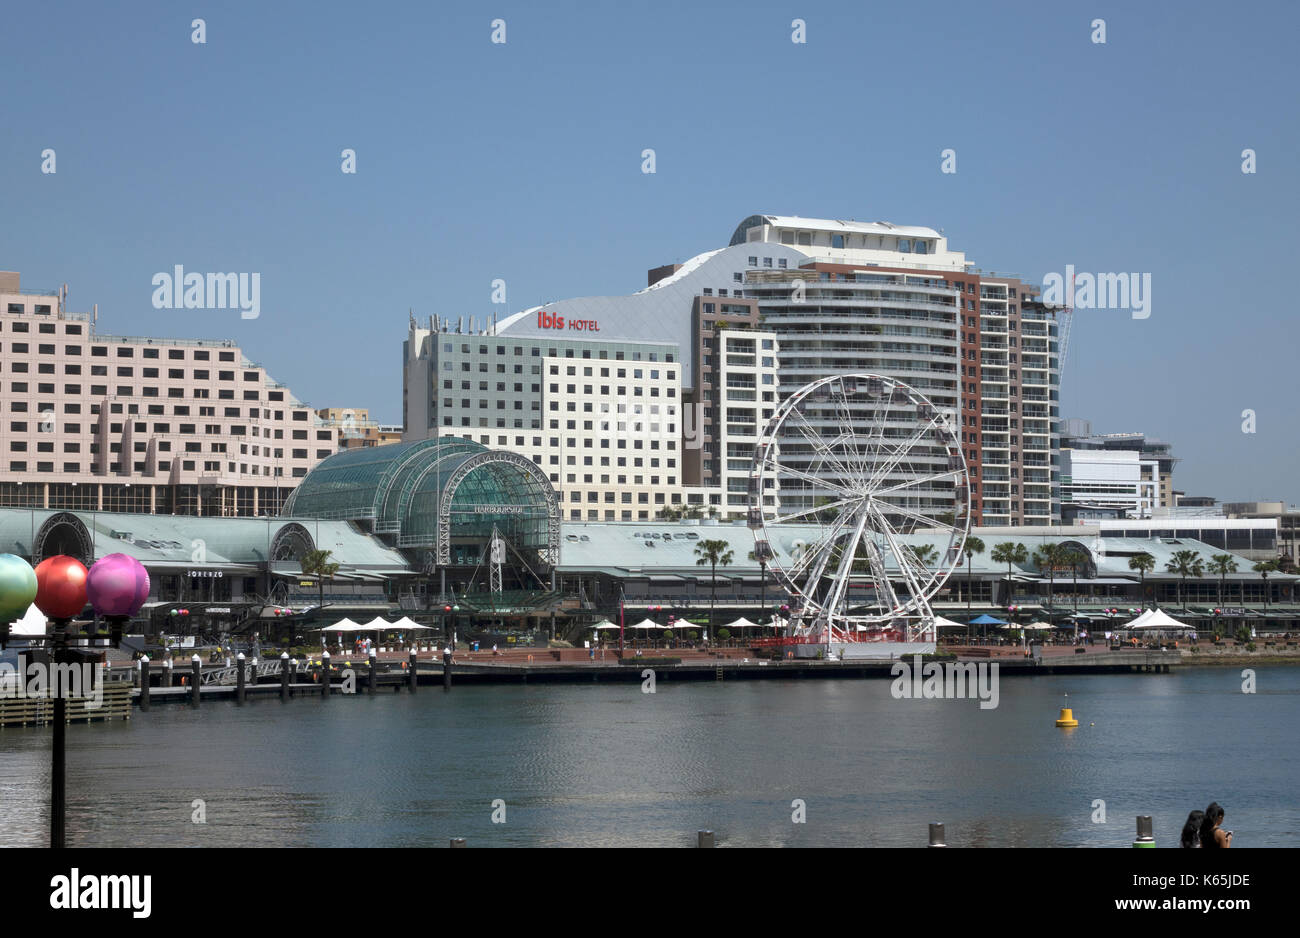 Looking Across Darling Harbour To Harbourside Shopping Centre, Ibis Hotel Murray St, Pyrmont, Sydney Australia - Stock Image